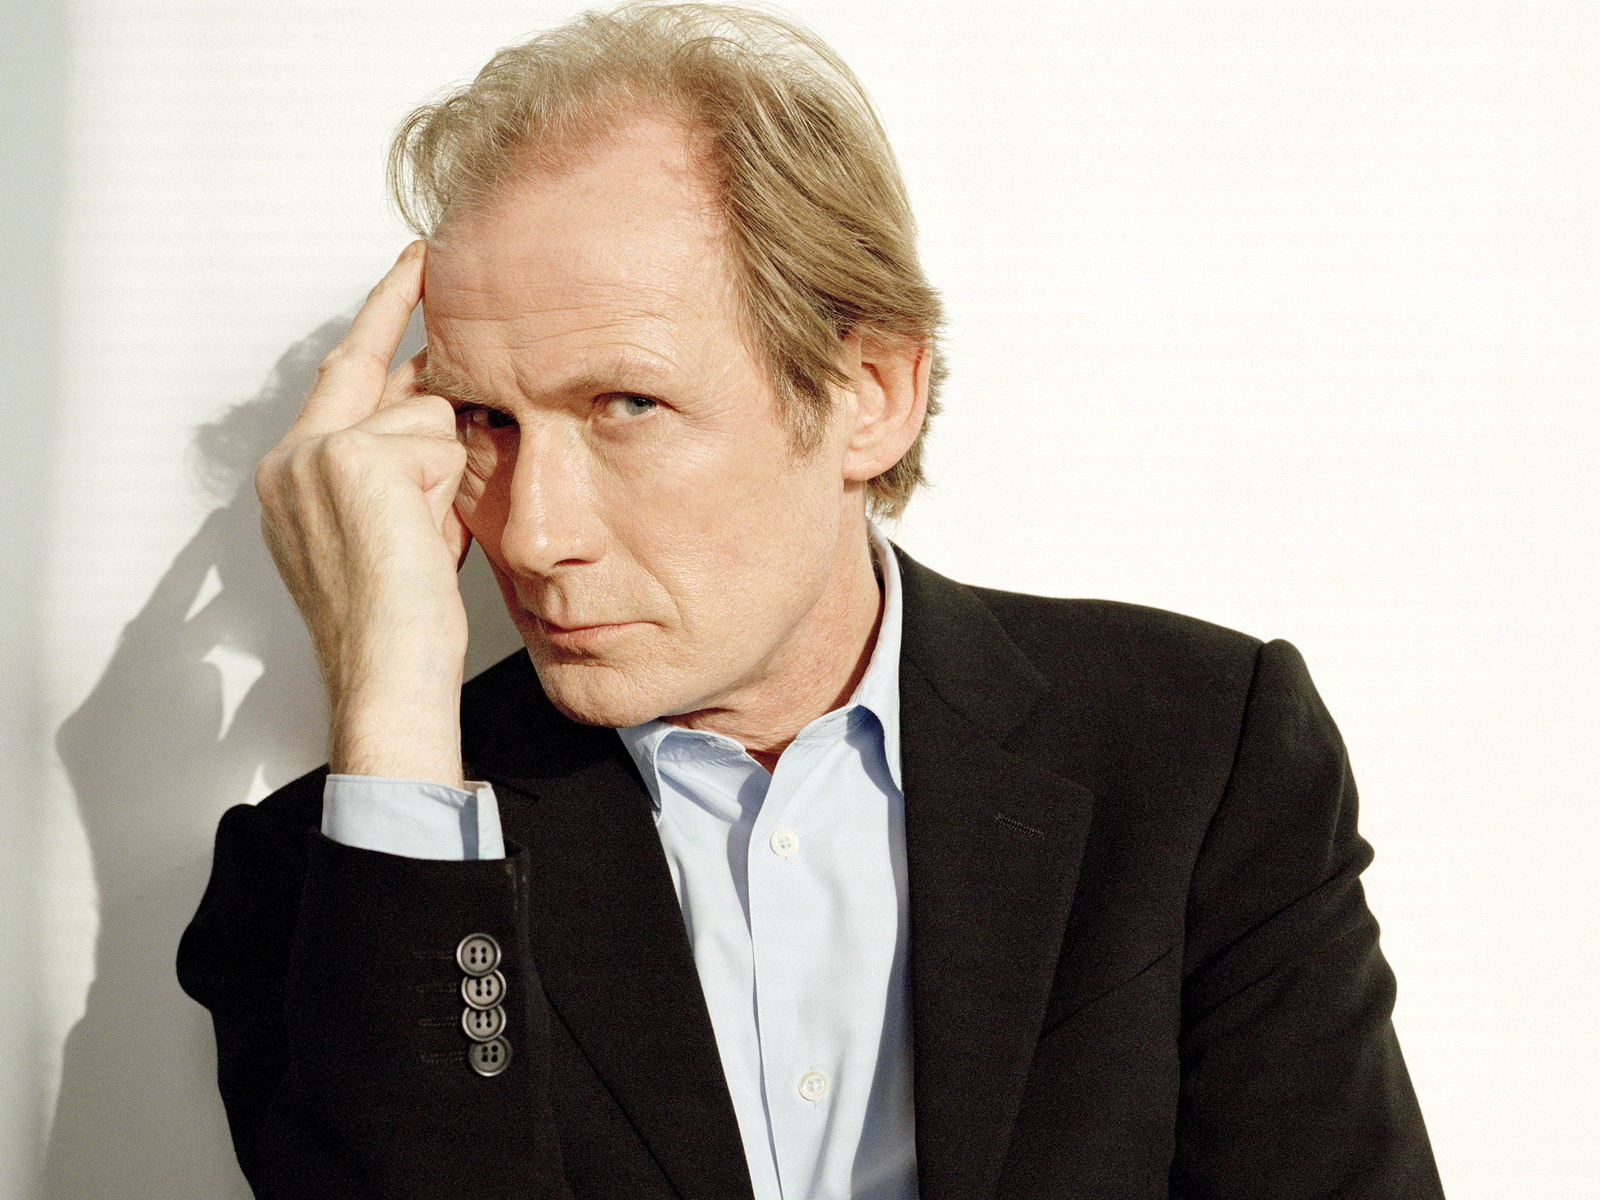 104264_bill-naji_or_Bill-Nighy_1600x1200_www.GdeFon.ru_